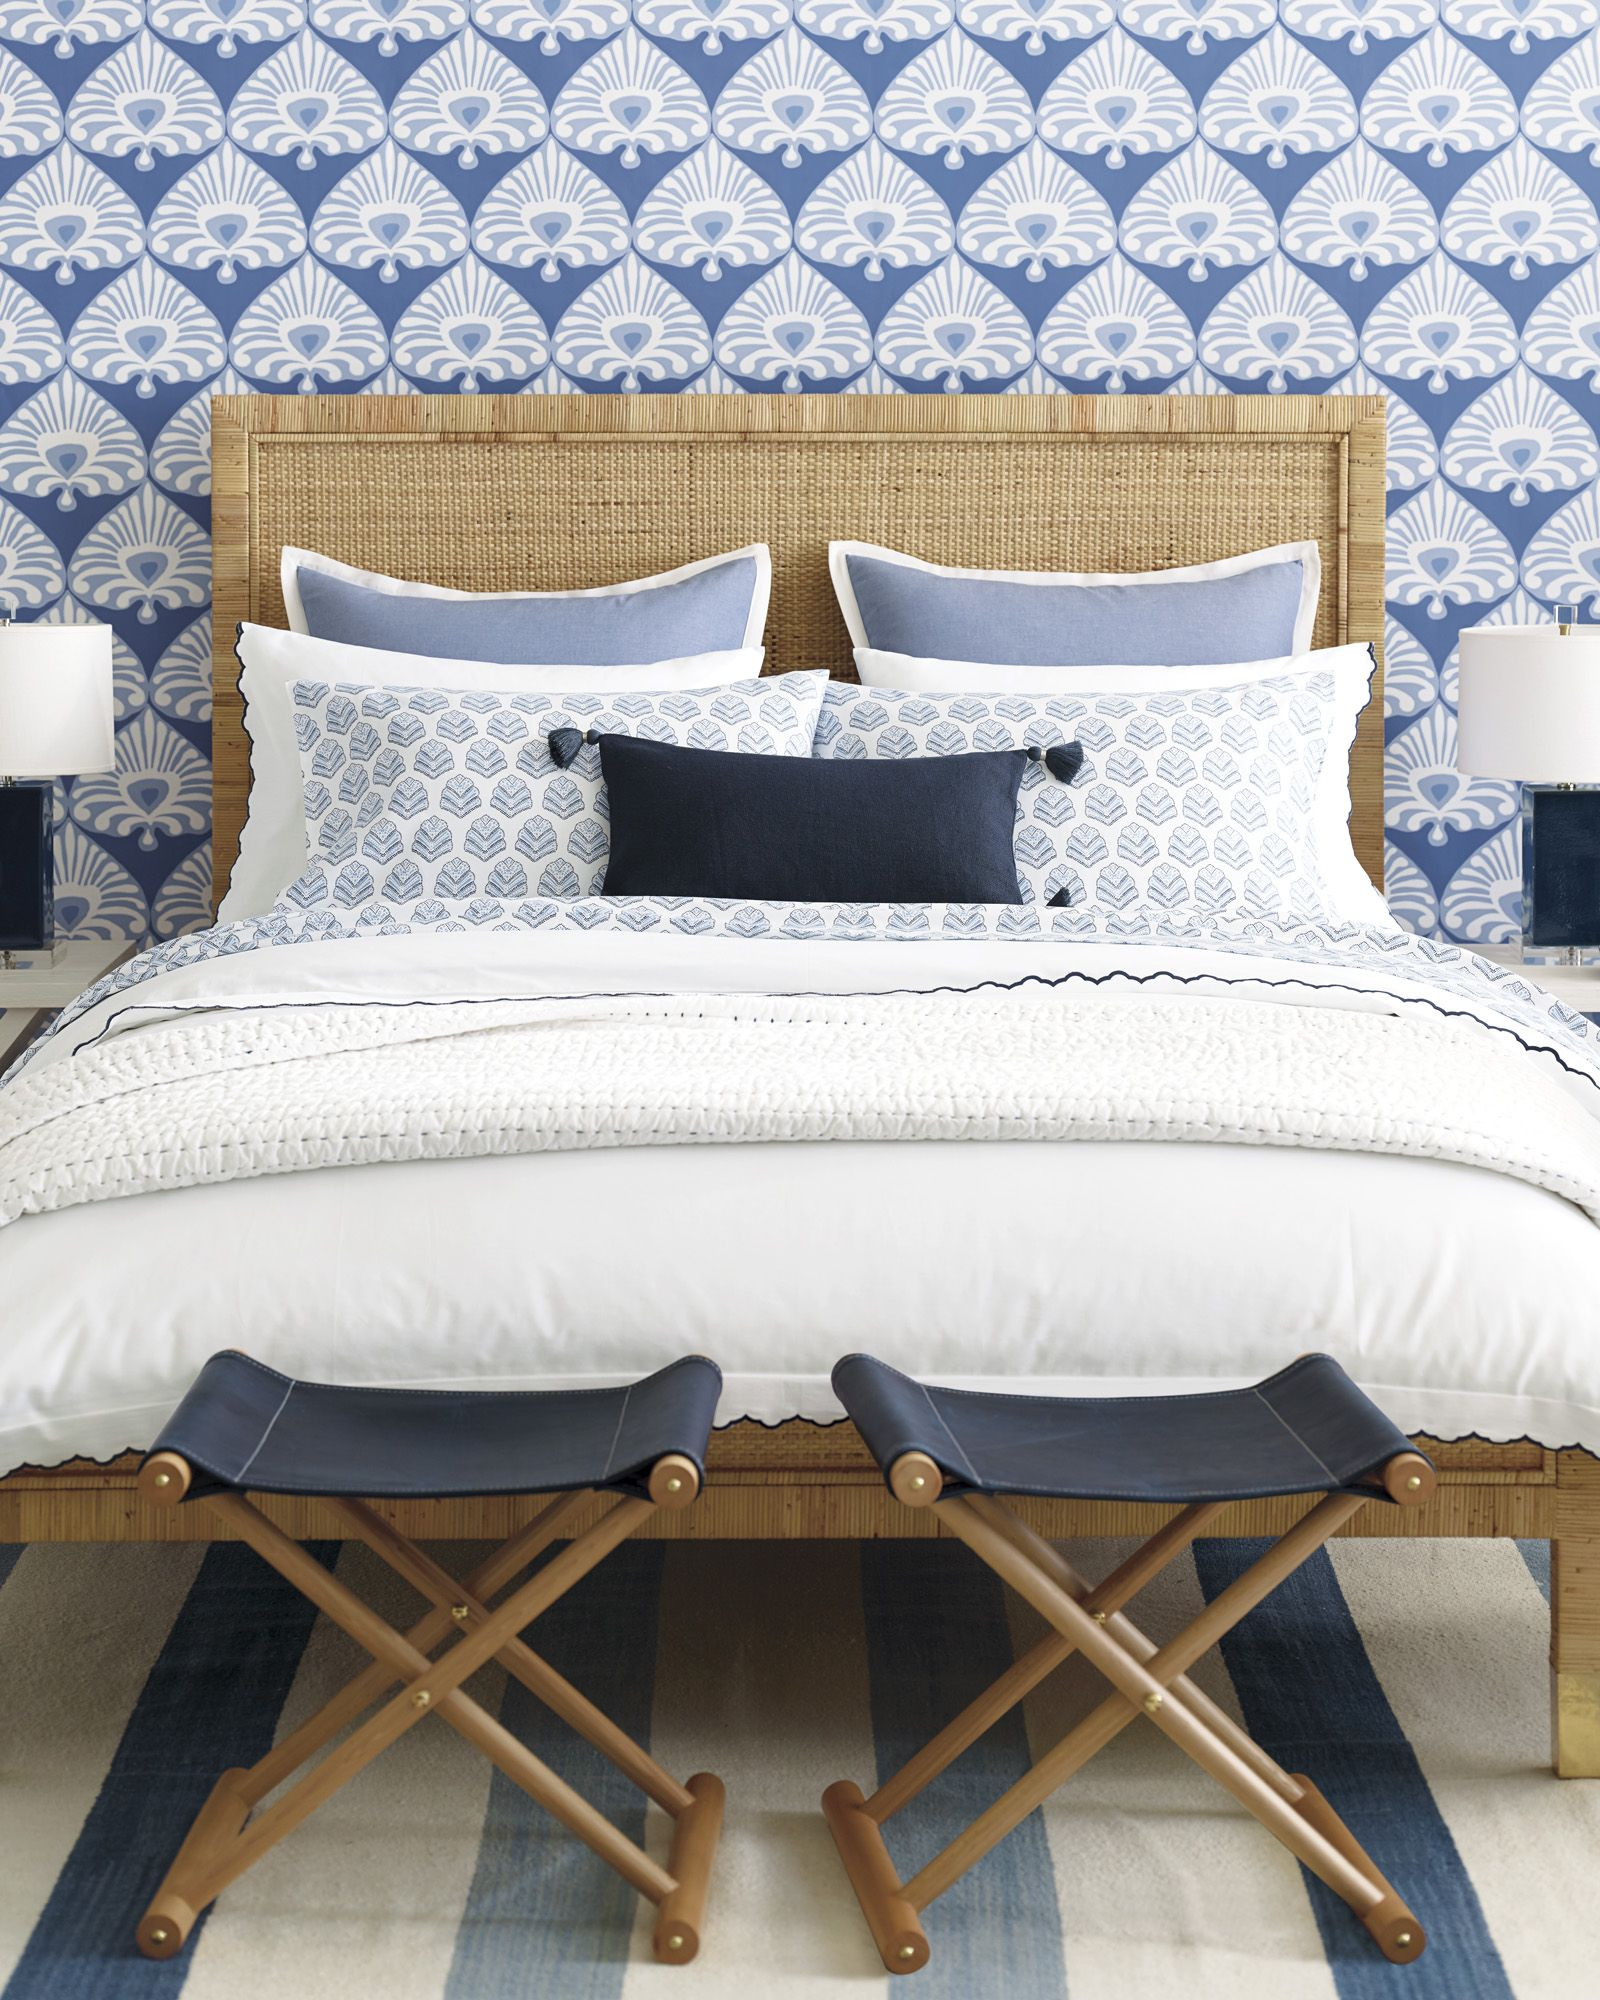 cotton p uk her cover and duvet home ted scallop mens gifts baker king butterfly black ramanda for collective